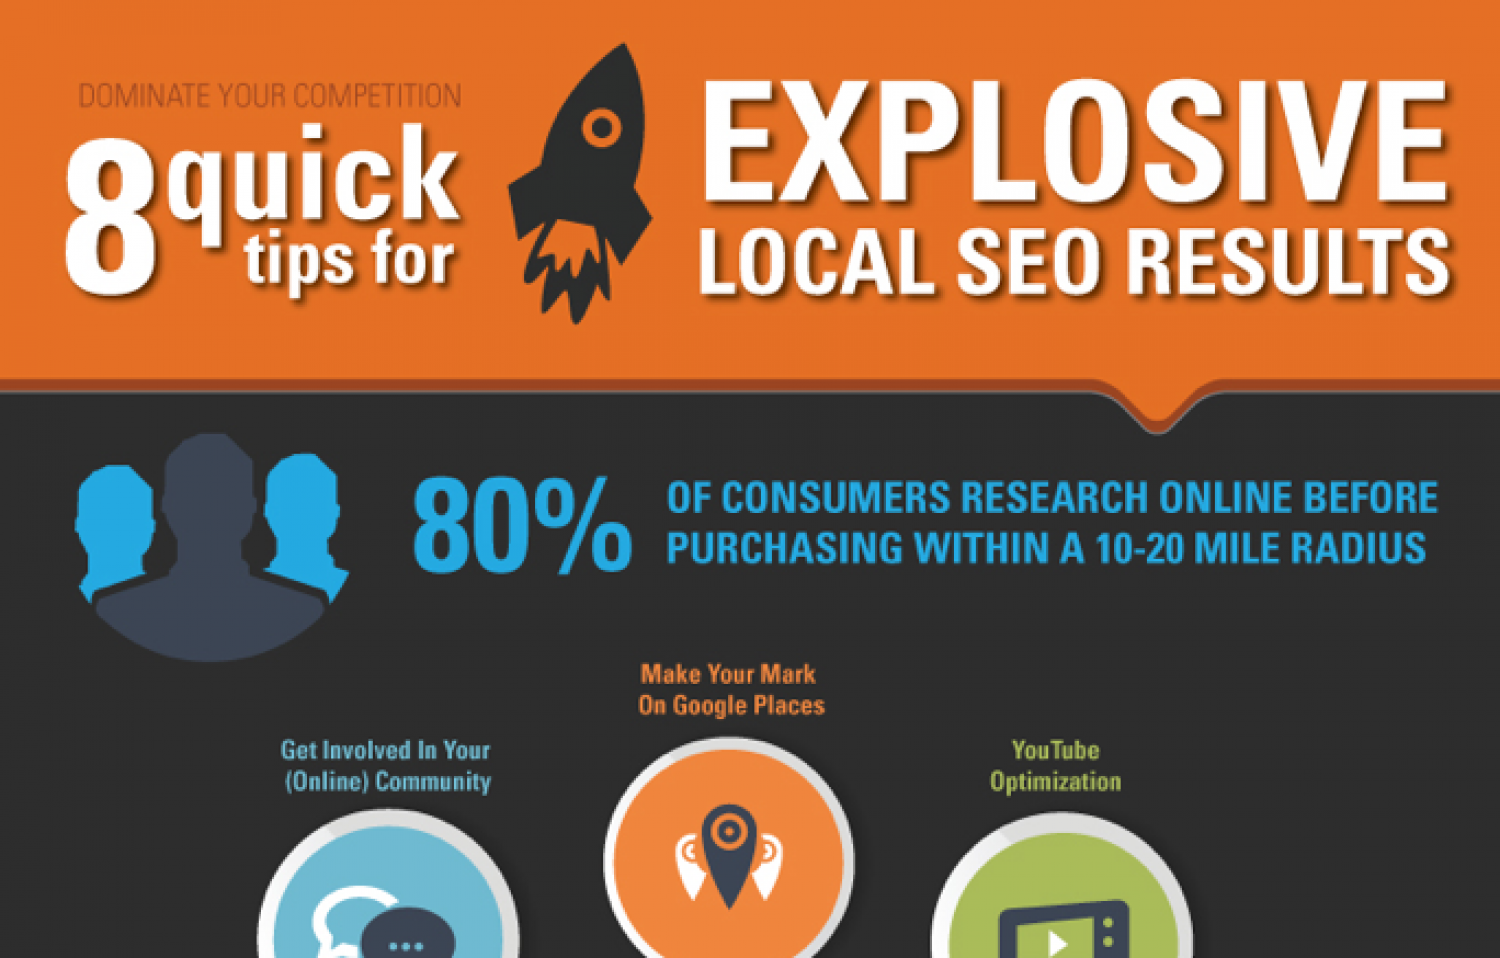 8 Quick Tips for Explosive Local SEO Results Infographic